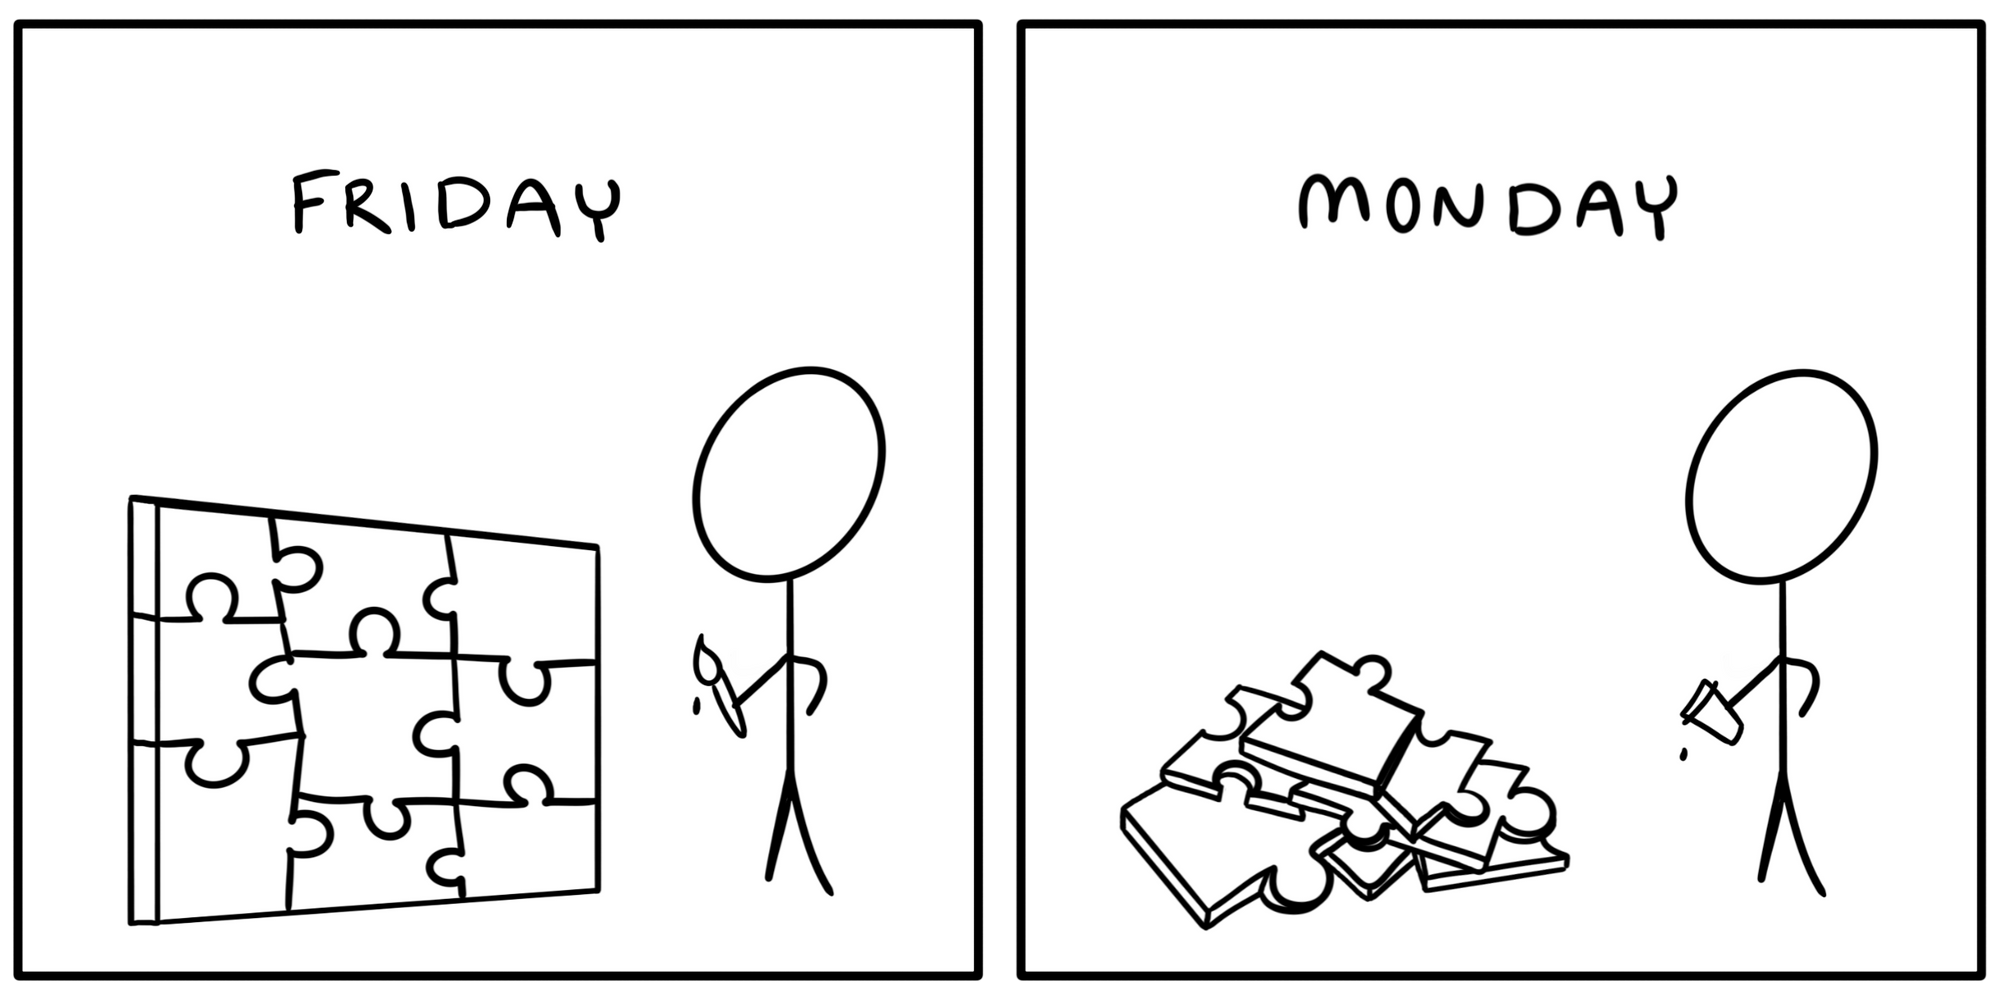 Your project on Friday (a finished puzzle) vs Monday (a pile of puzzle pieces) comic